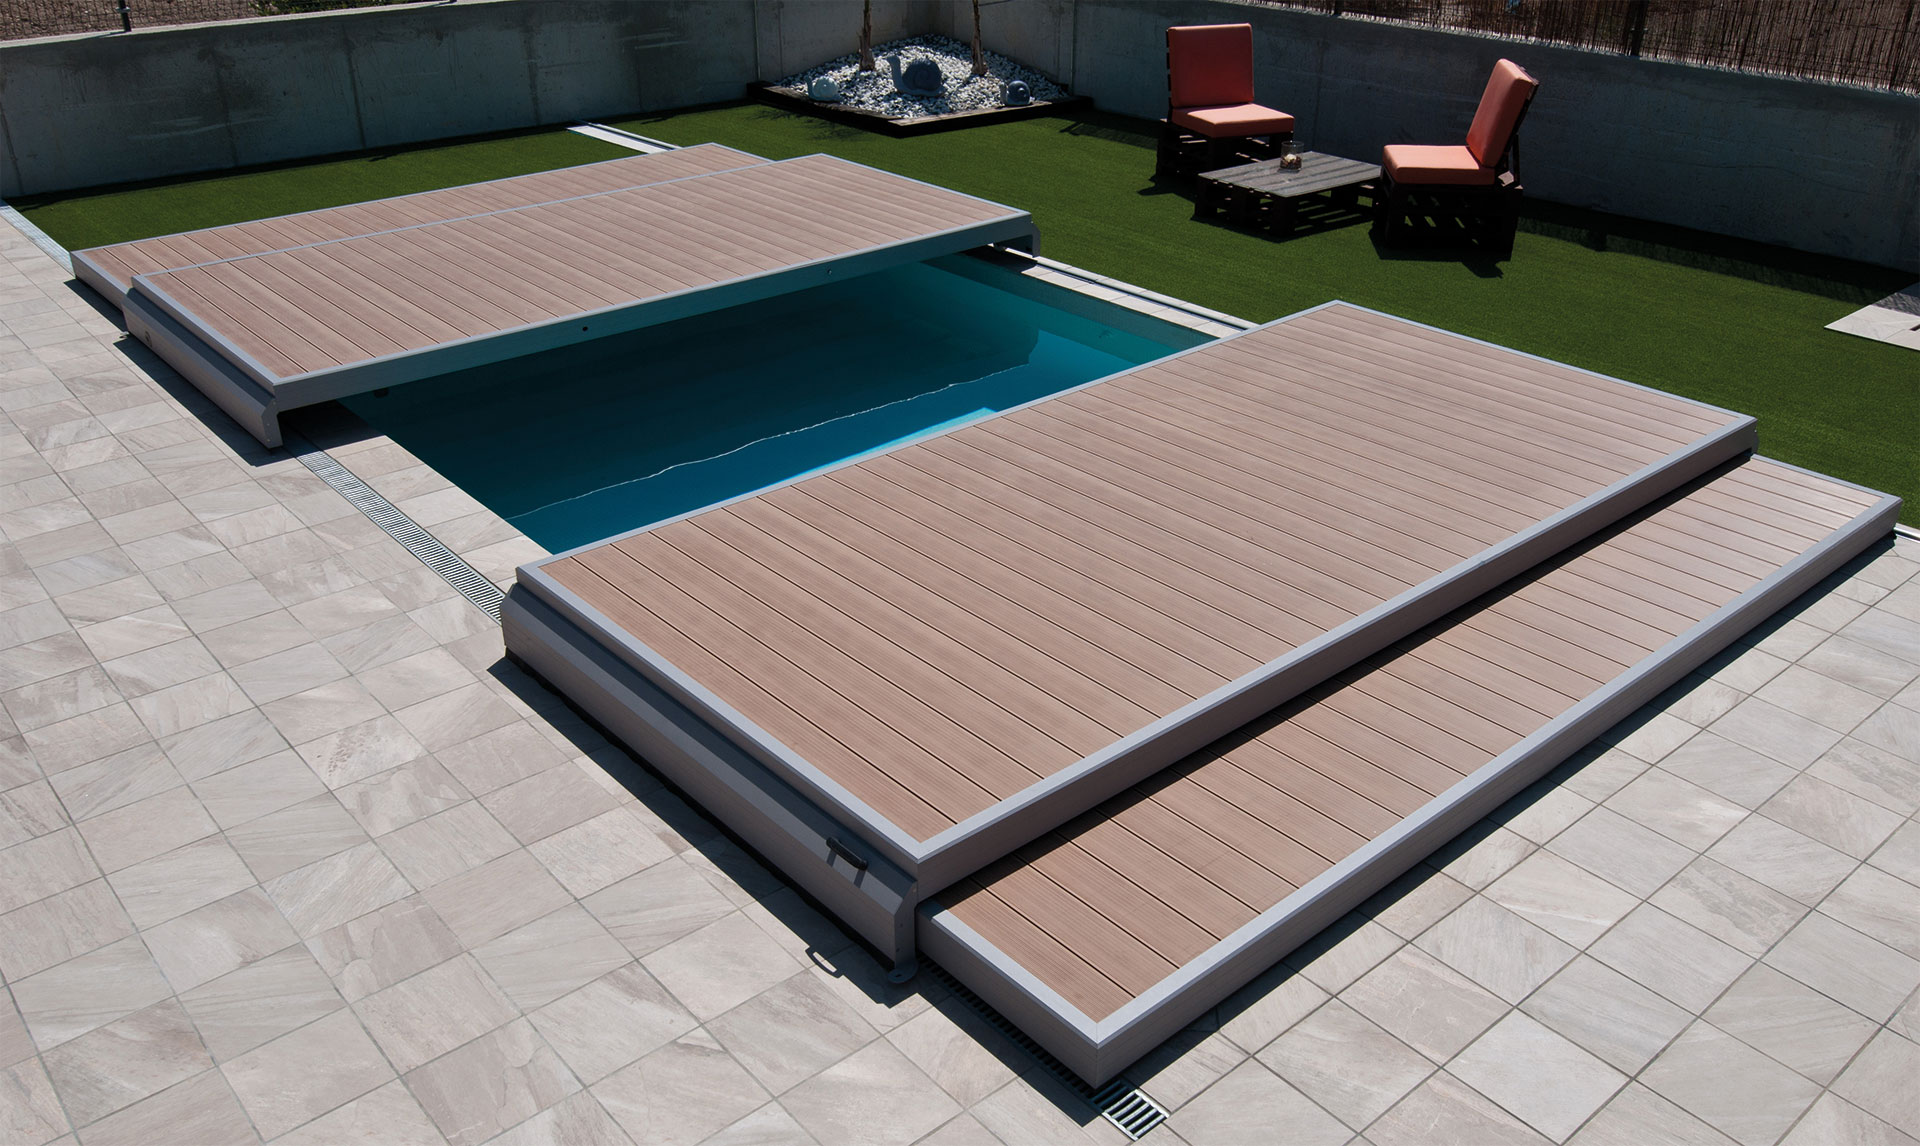 Abri terrasse de piscine en kit intelligent deckwell for Terrasse mobile piscine prix